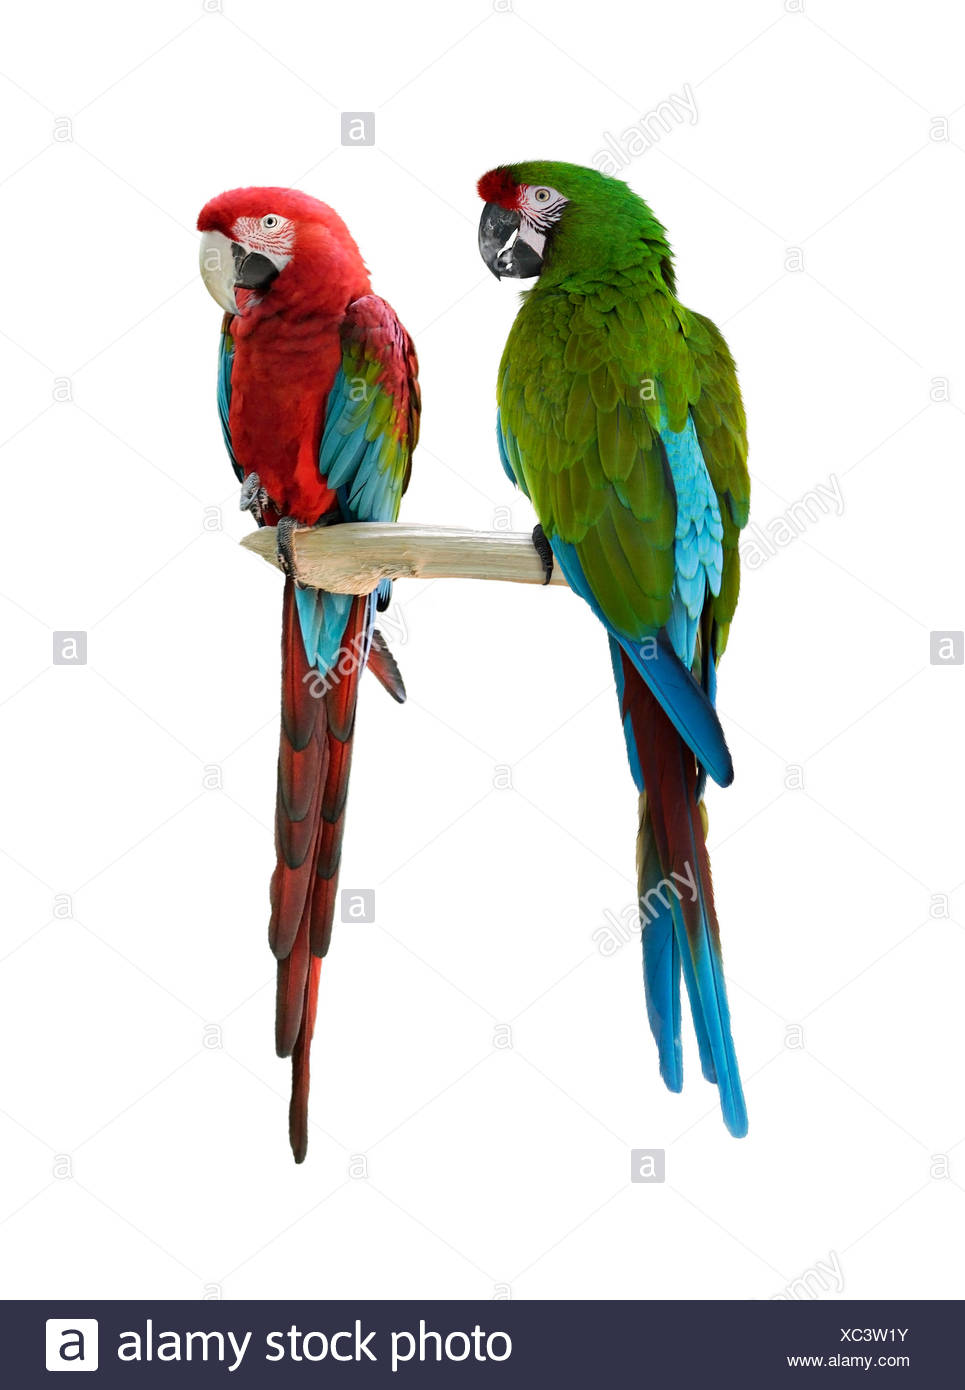 Parrots Cut Out Stock Images Pictures Alamy Parrot Origamiorigami Macaw Parrotorigami Diagram Colorful Image